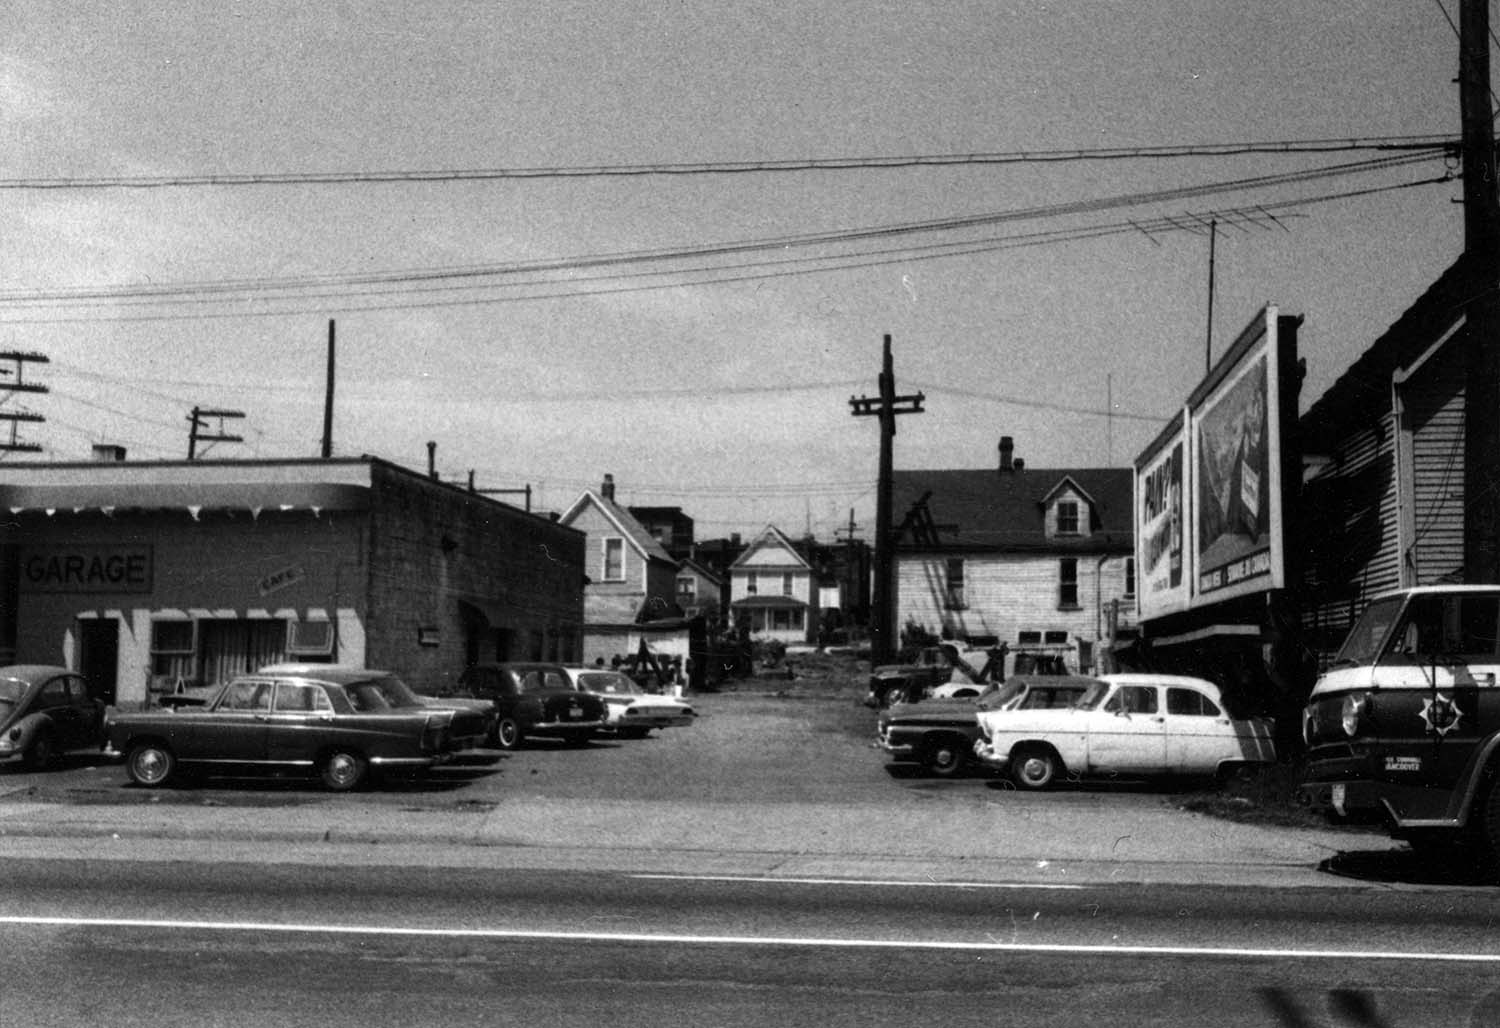 Parking on vacant land and billboard at east side [of Iberica Garage and Northland Cafe 219 - 221 Prior Street], 1969. Reference code COV-S168-: CVA 203-56